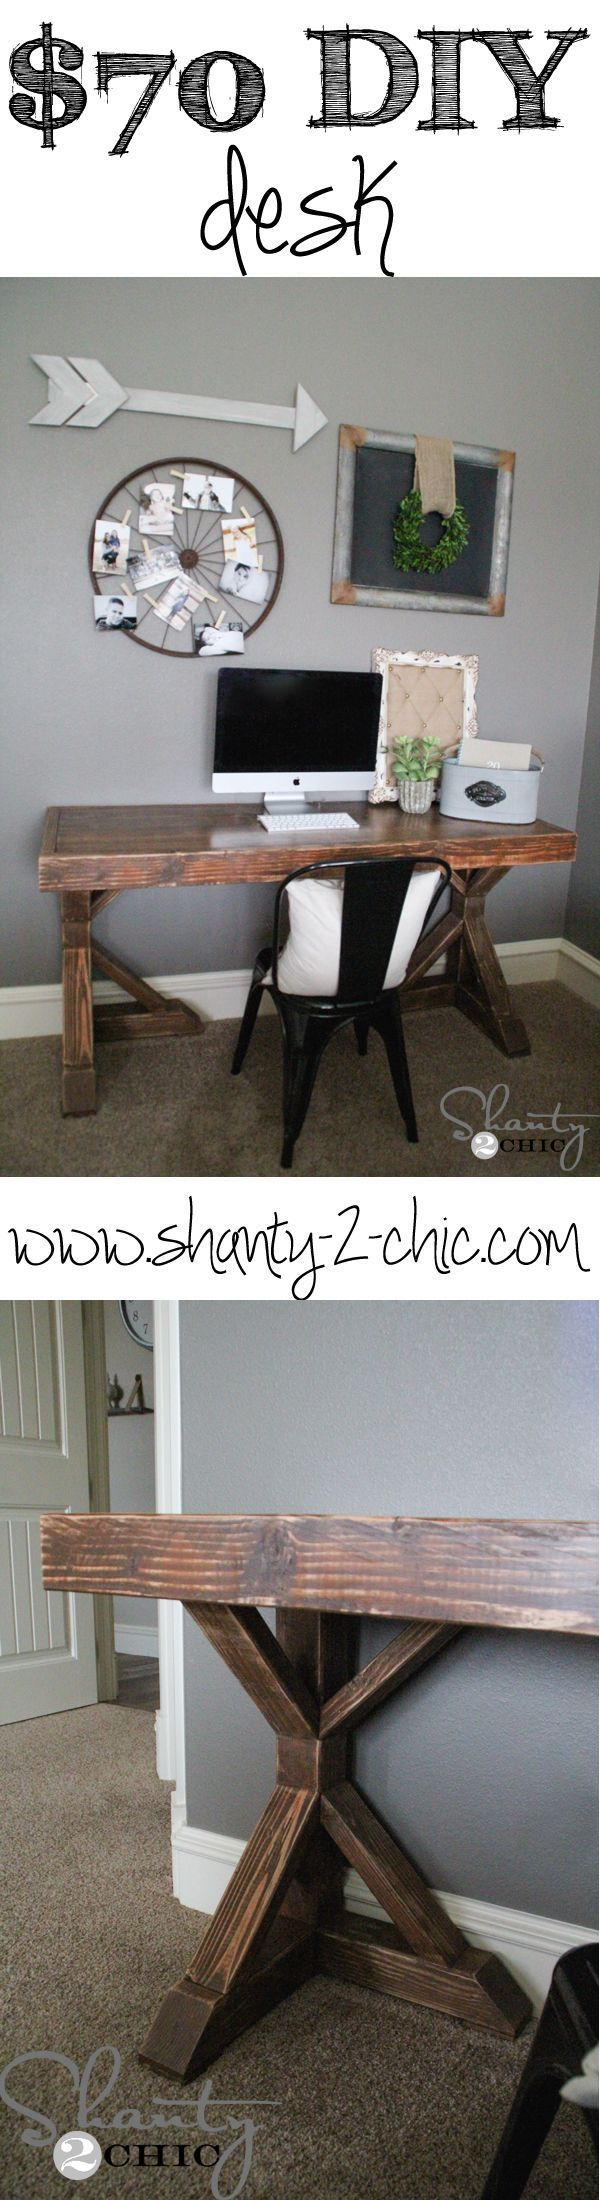 Build this DIY Trestle Desk with FREE Printable Plans! Love this!